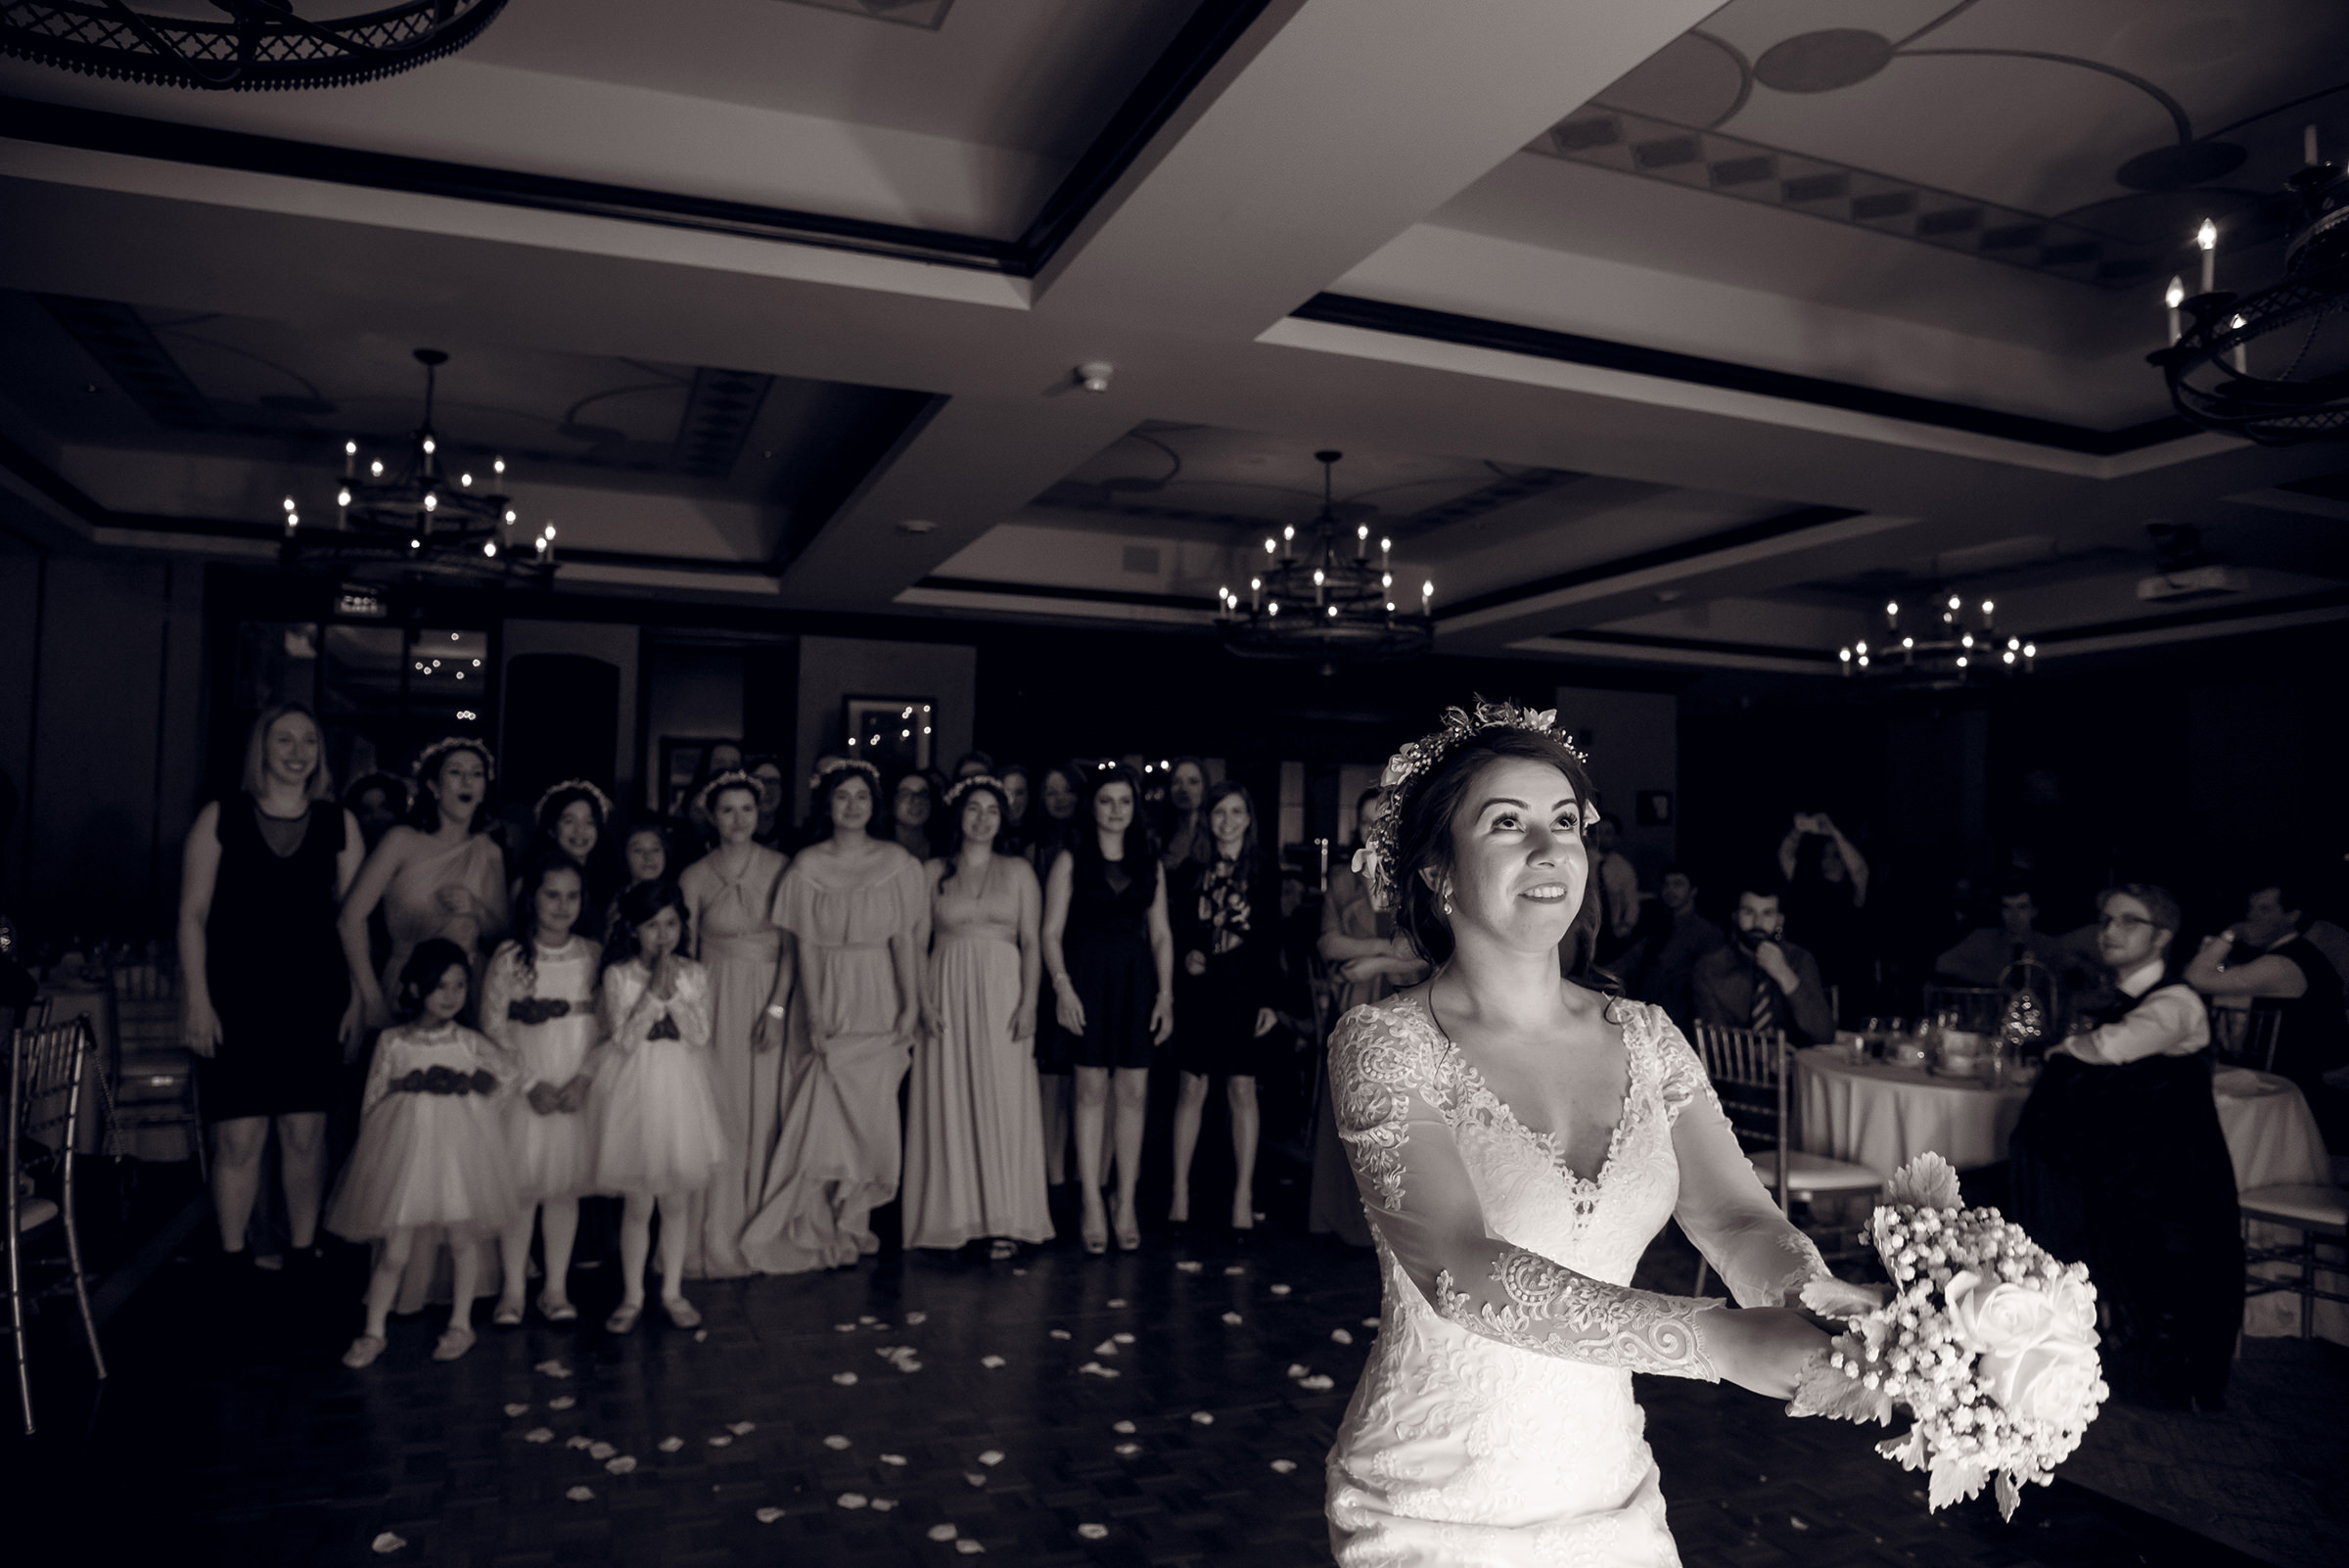 Black and white photo of bride tossing bouquet by David & Sherry Photography